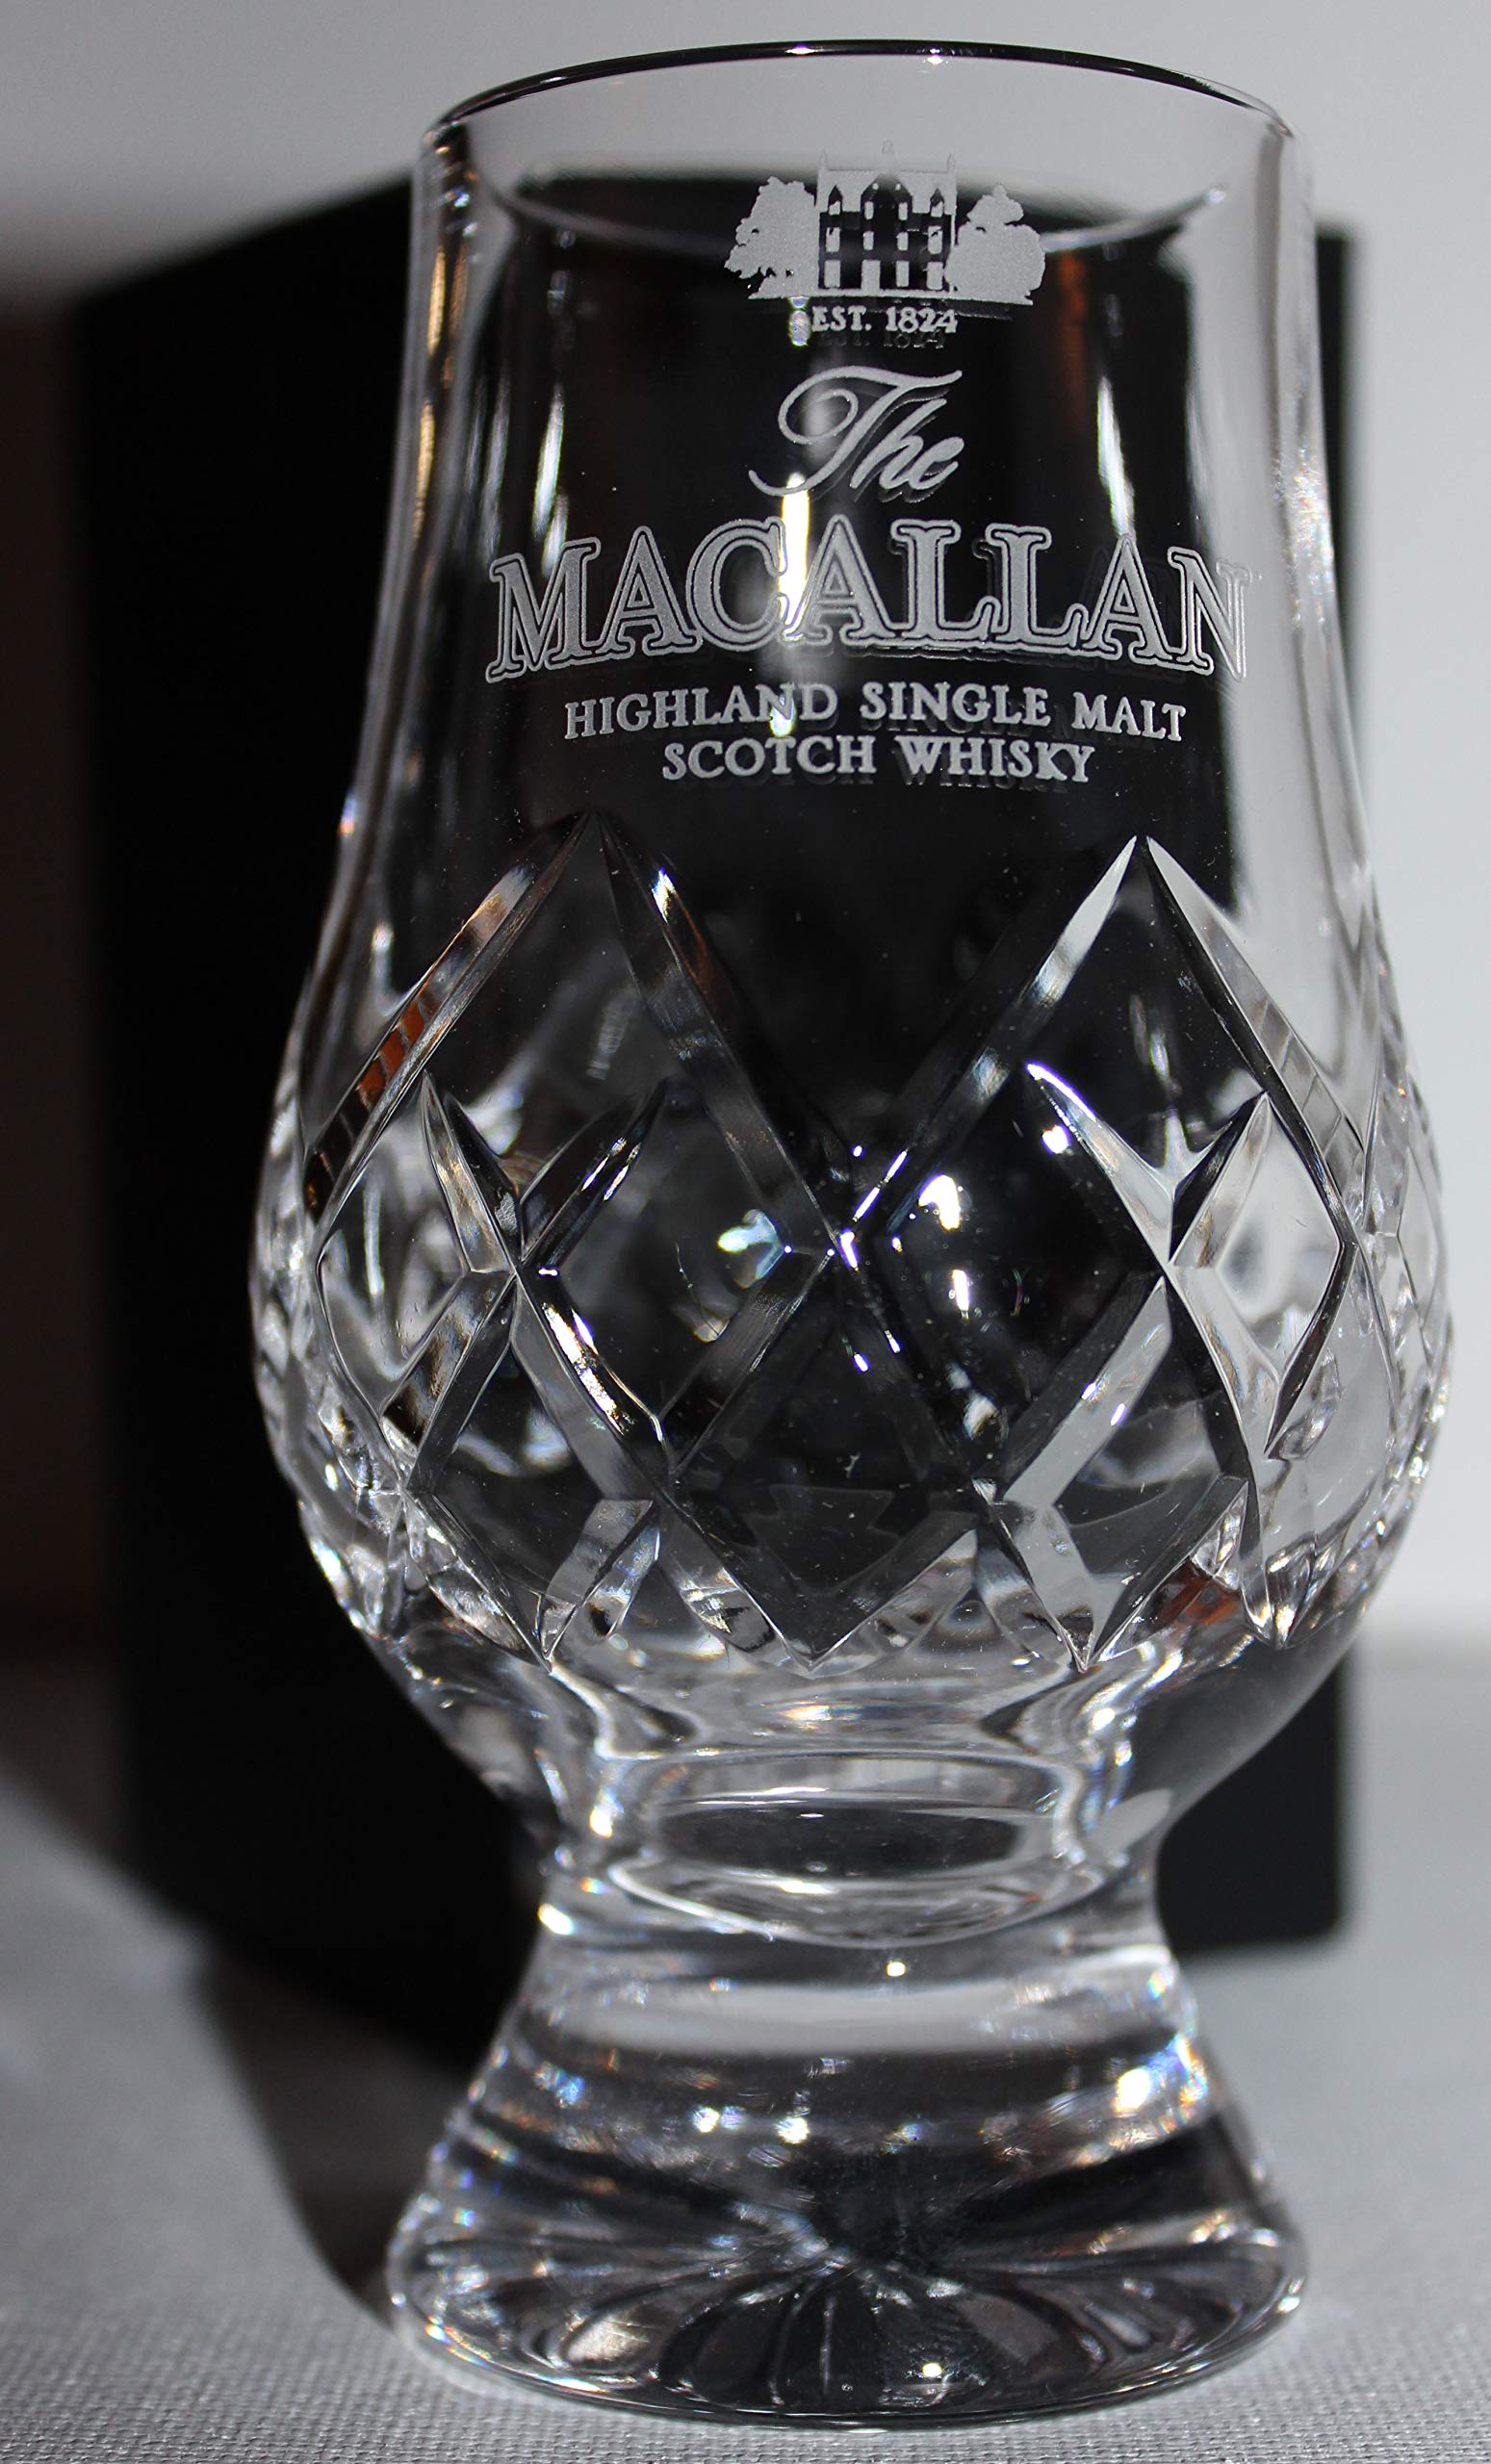 THE MACALLAN OFFICIAL GLENCAIRN CUT CRYSTAL SCOTCH MALT WHISKY TASTING GLASS